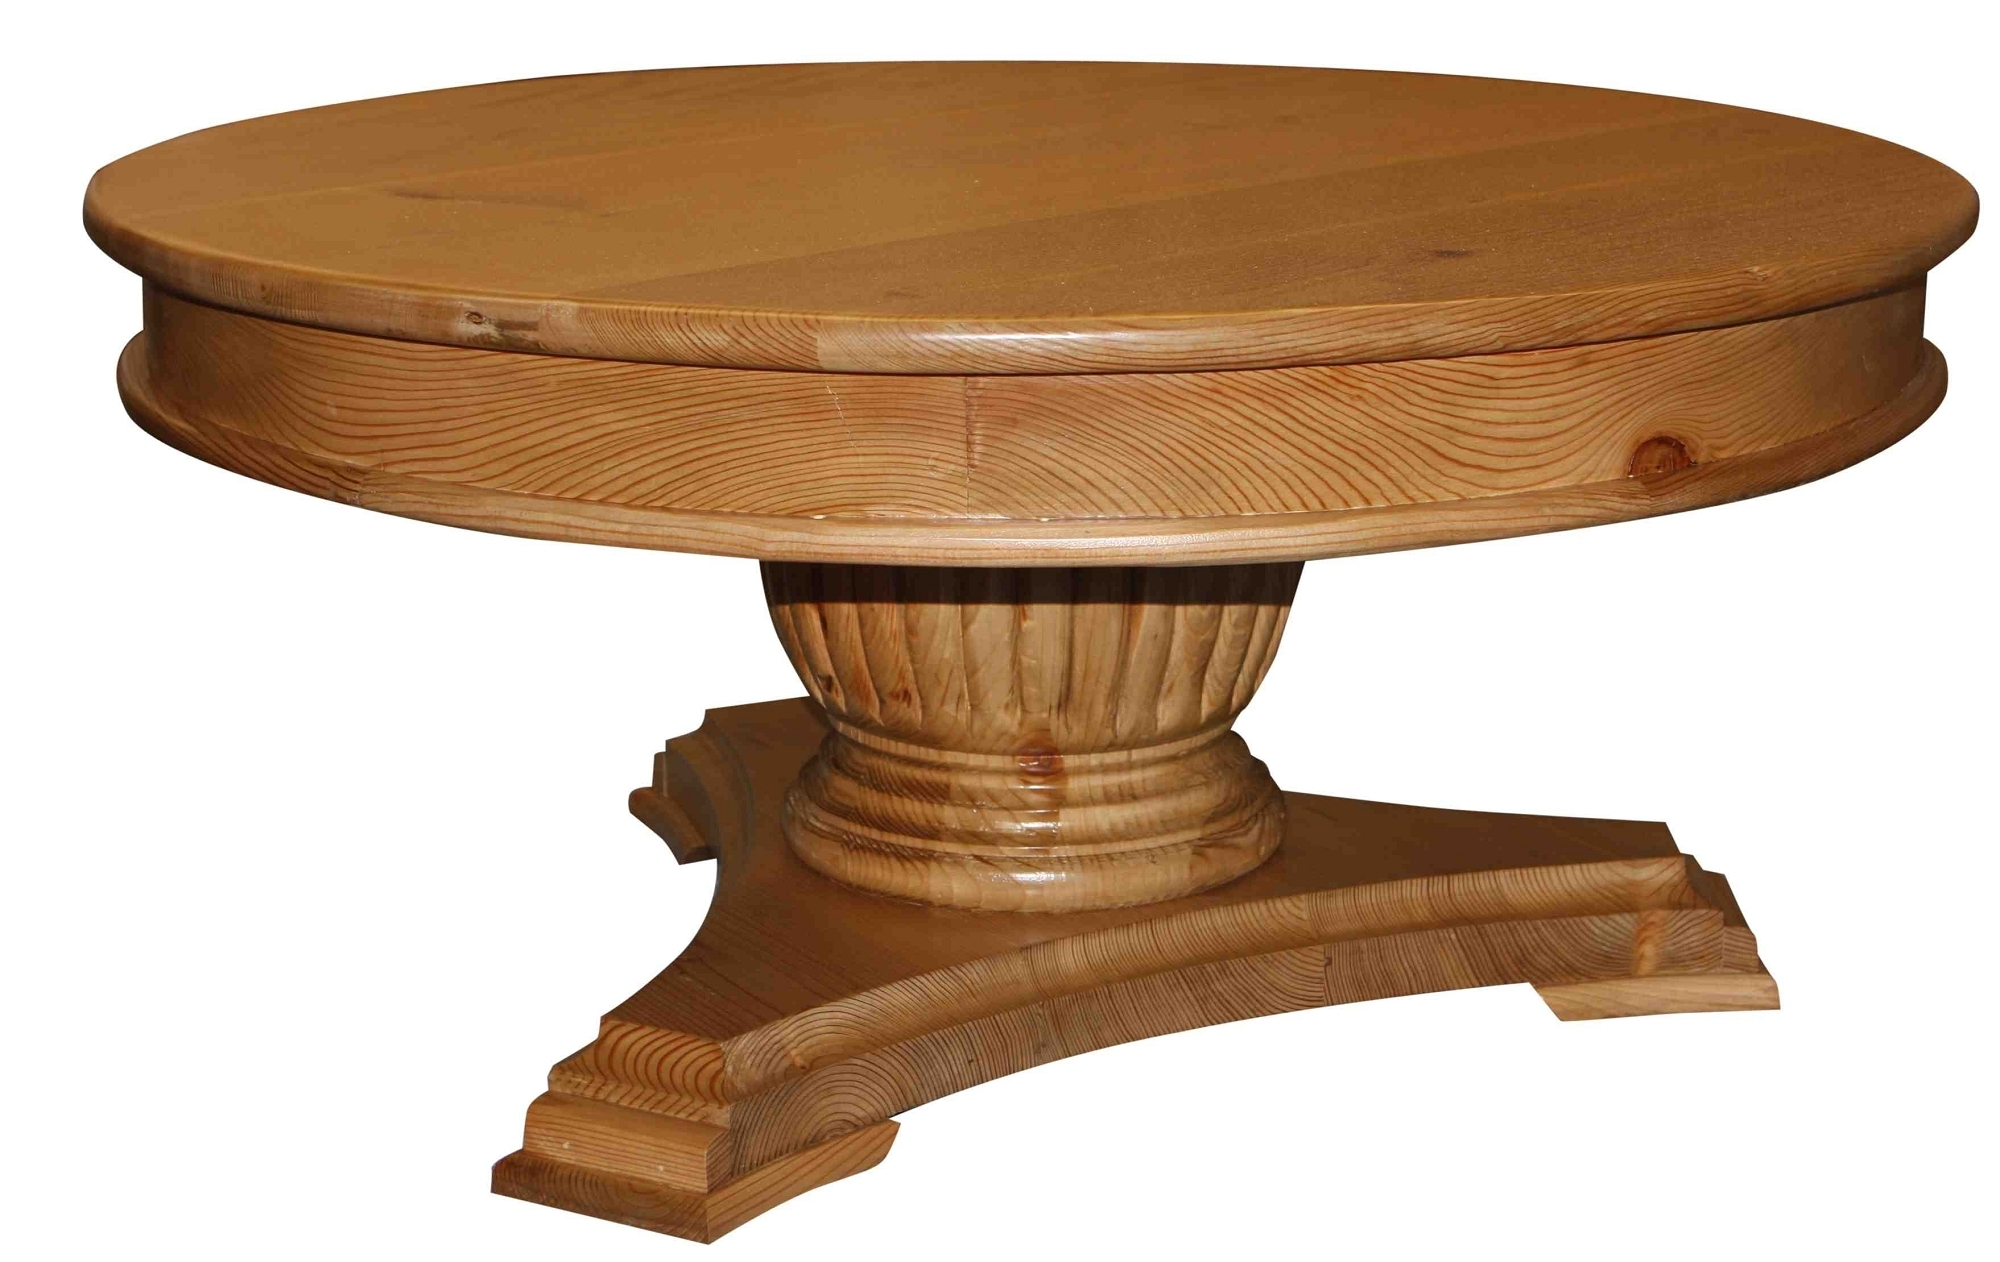 Wonderful Round Coffee Table Design Inspiration Come With Fluted Regarding Round Carved Wood Coffee Tables (Photo 22 of 30)